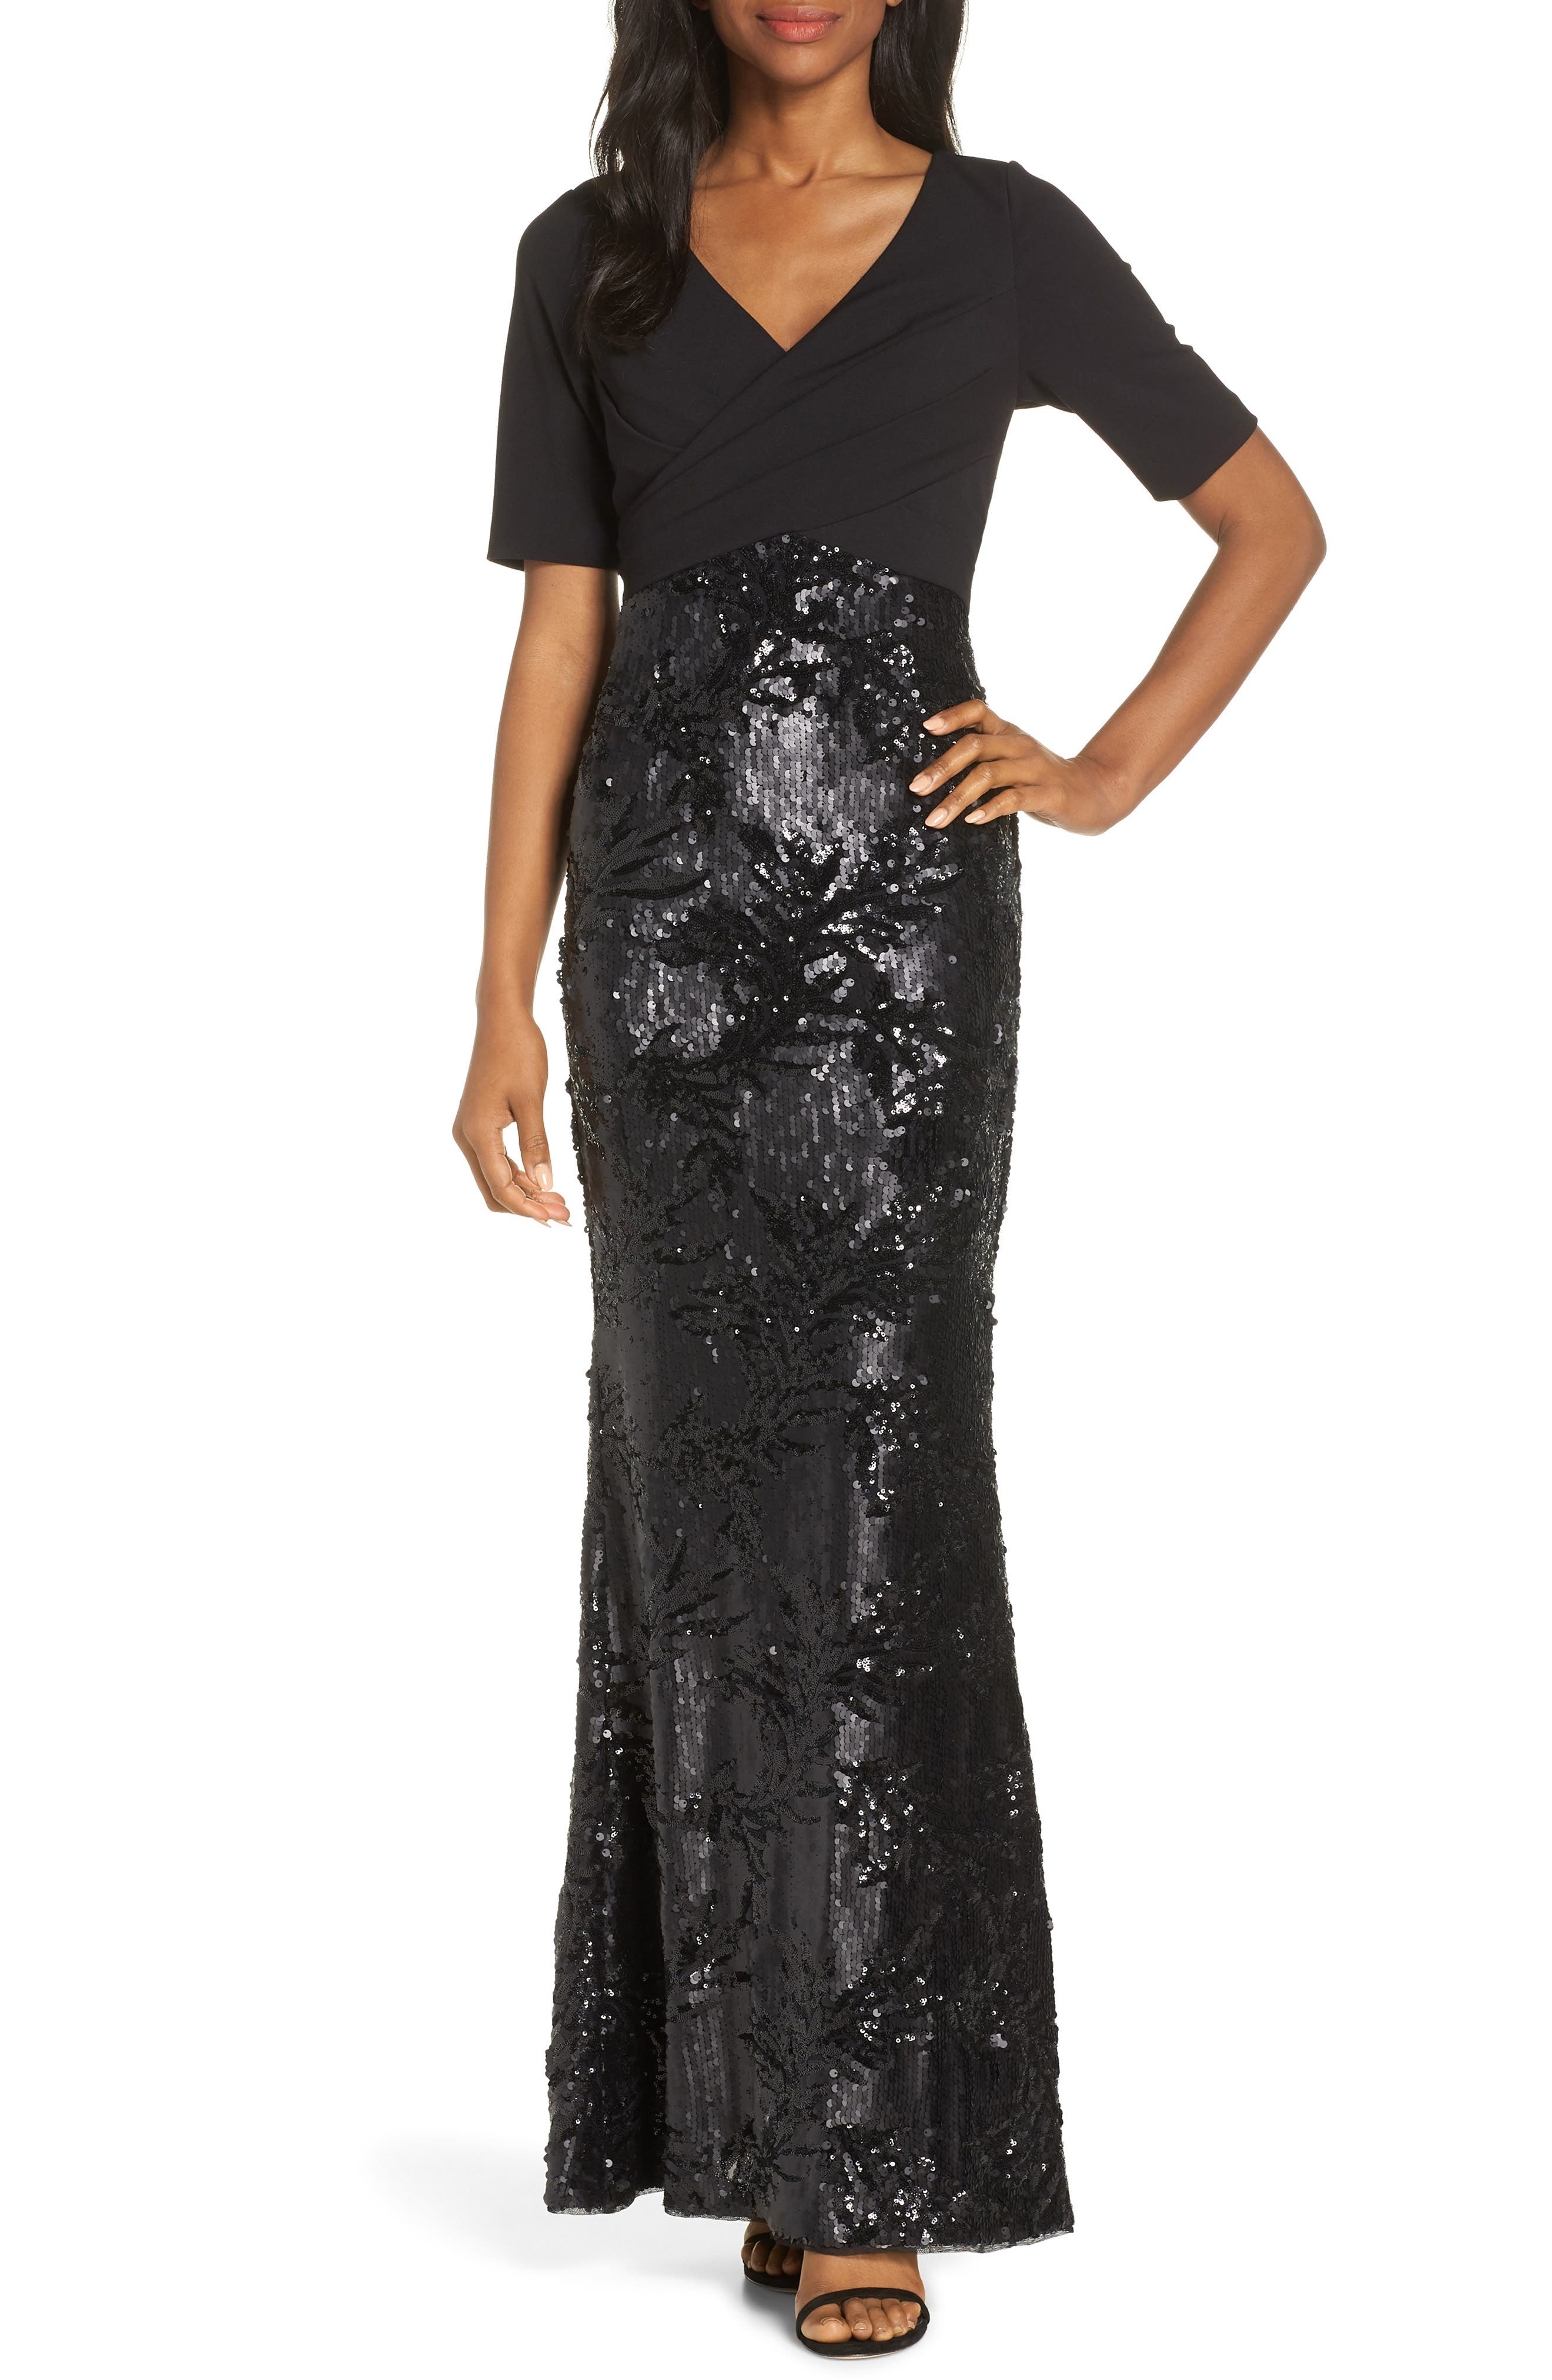 Adrianna Papell Sequin Evening Dress, 8 (similar to 16W) - Black